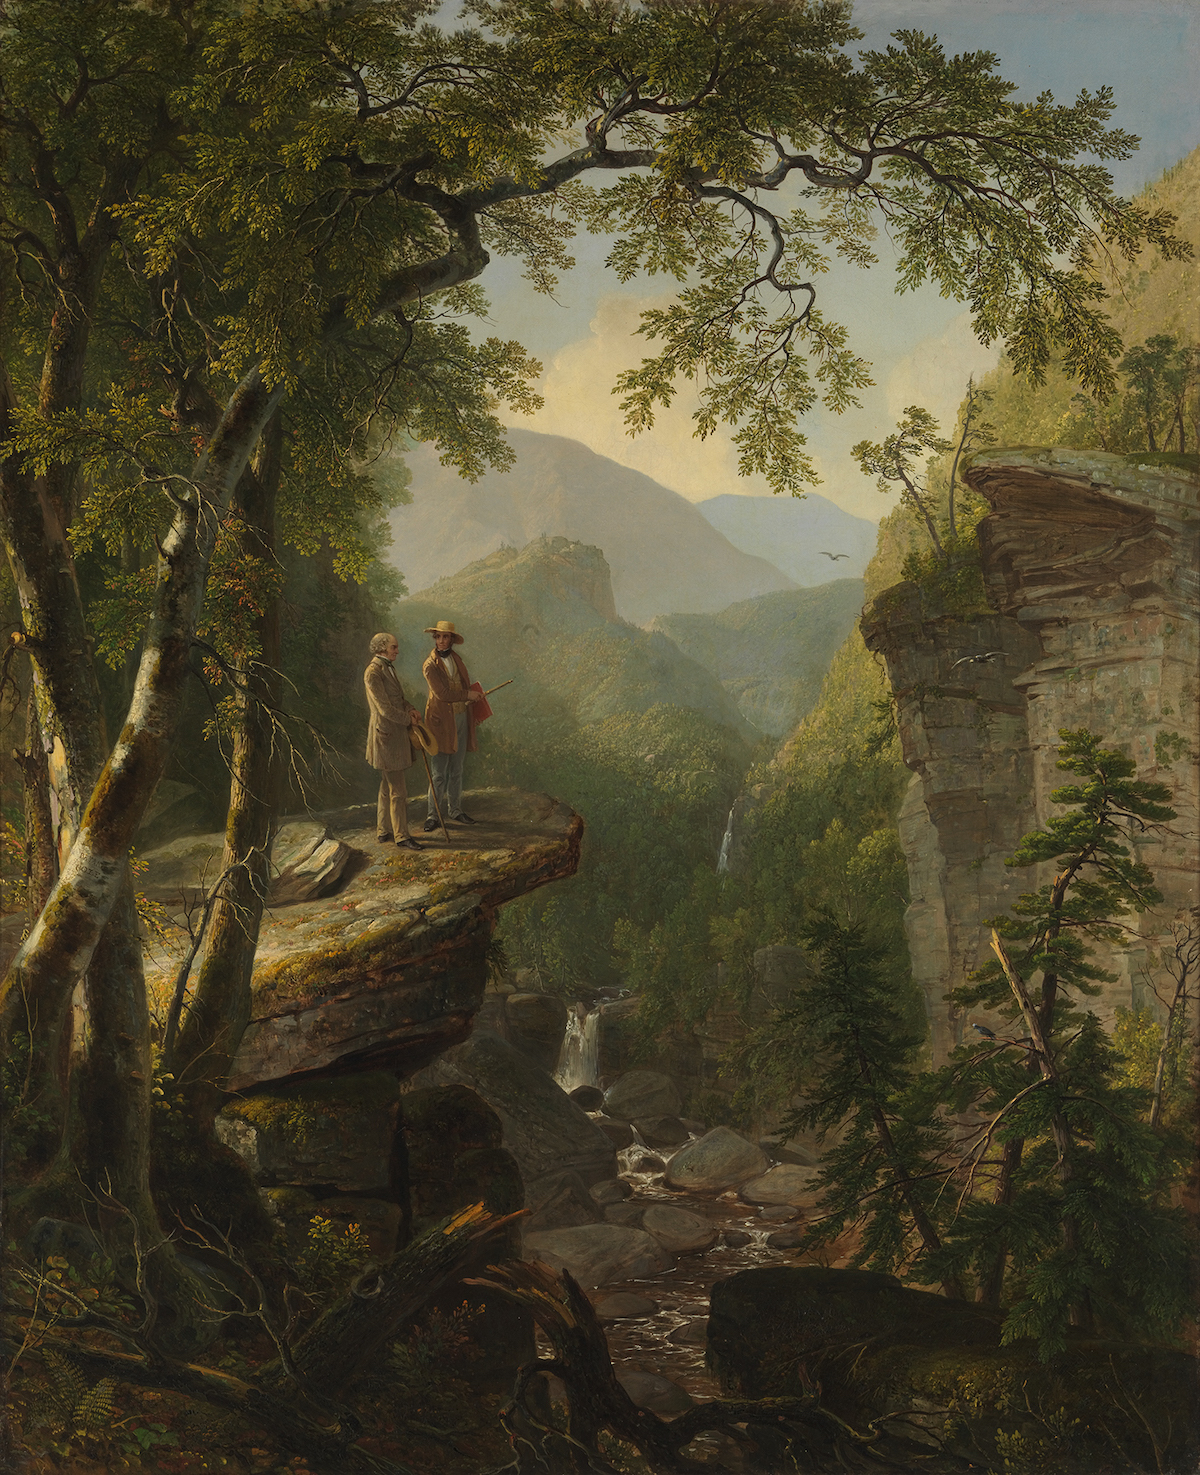 Asher B. Durand's 'Kindred Spirits' (1848) was bought by Crystal Bridges of American Art founder Alice Walton after being deaccessioned by the New York Public Library in 2005.